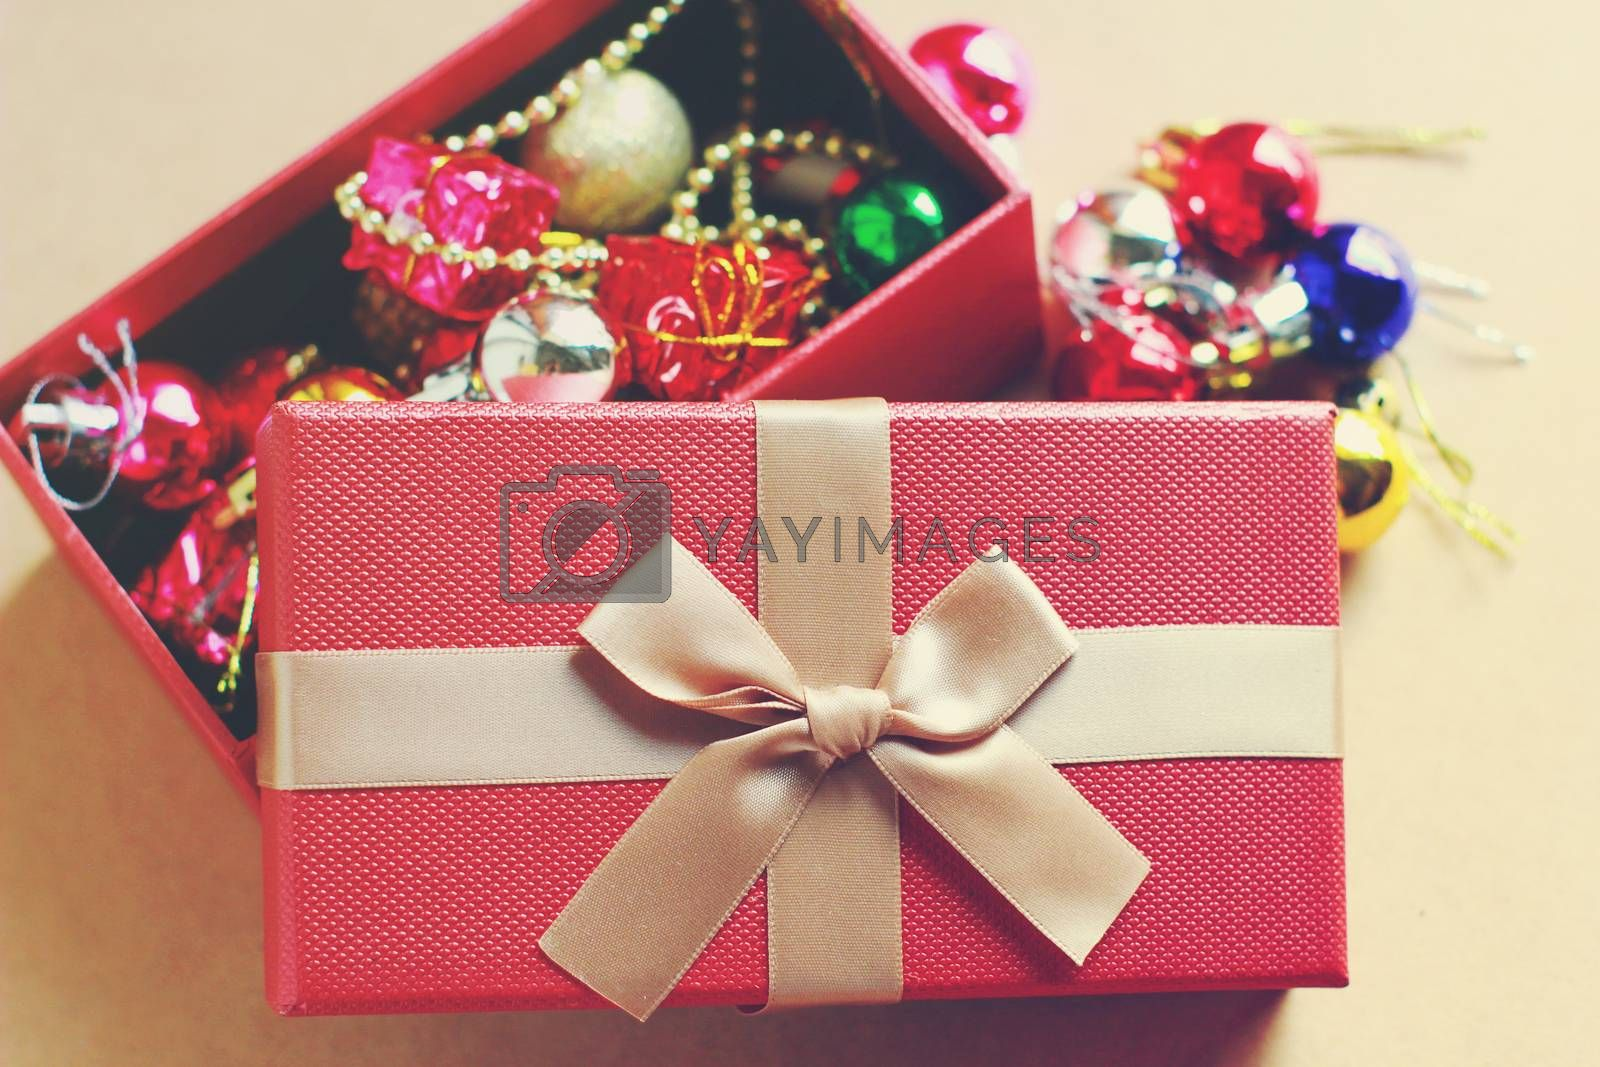 Gift red box contain with christmas ornament, retro filter effect